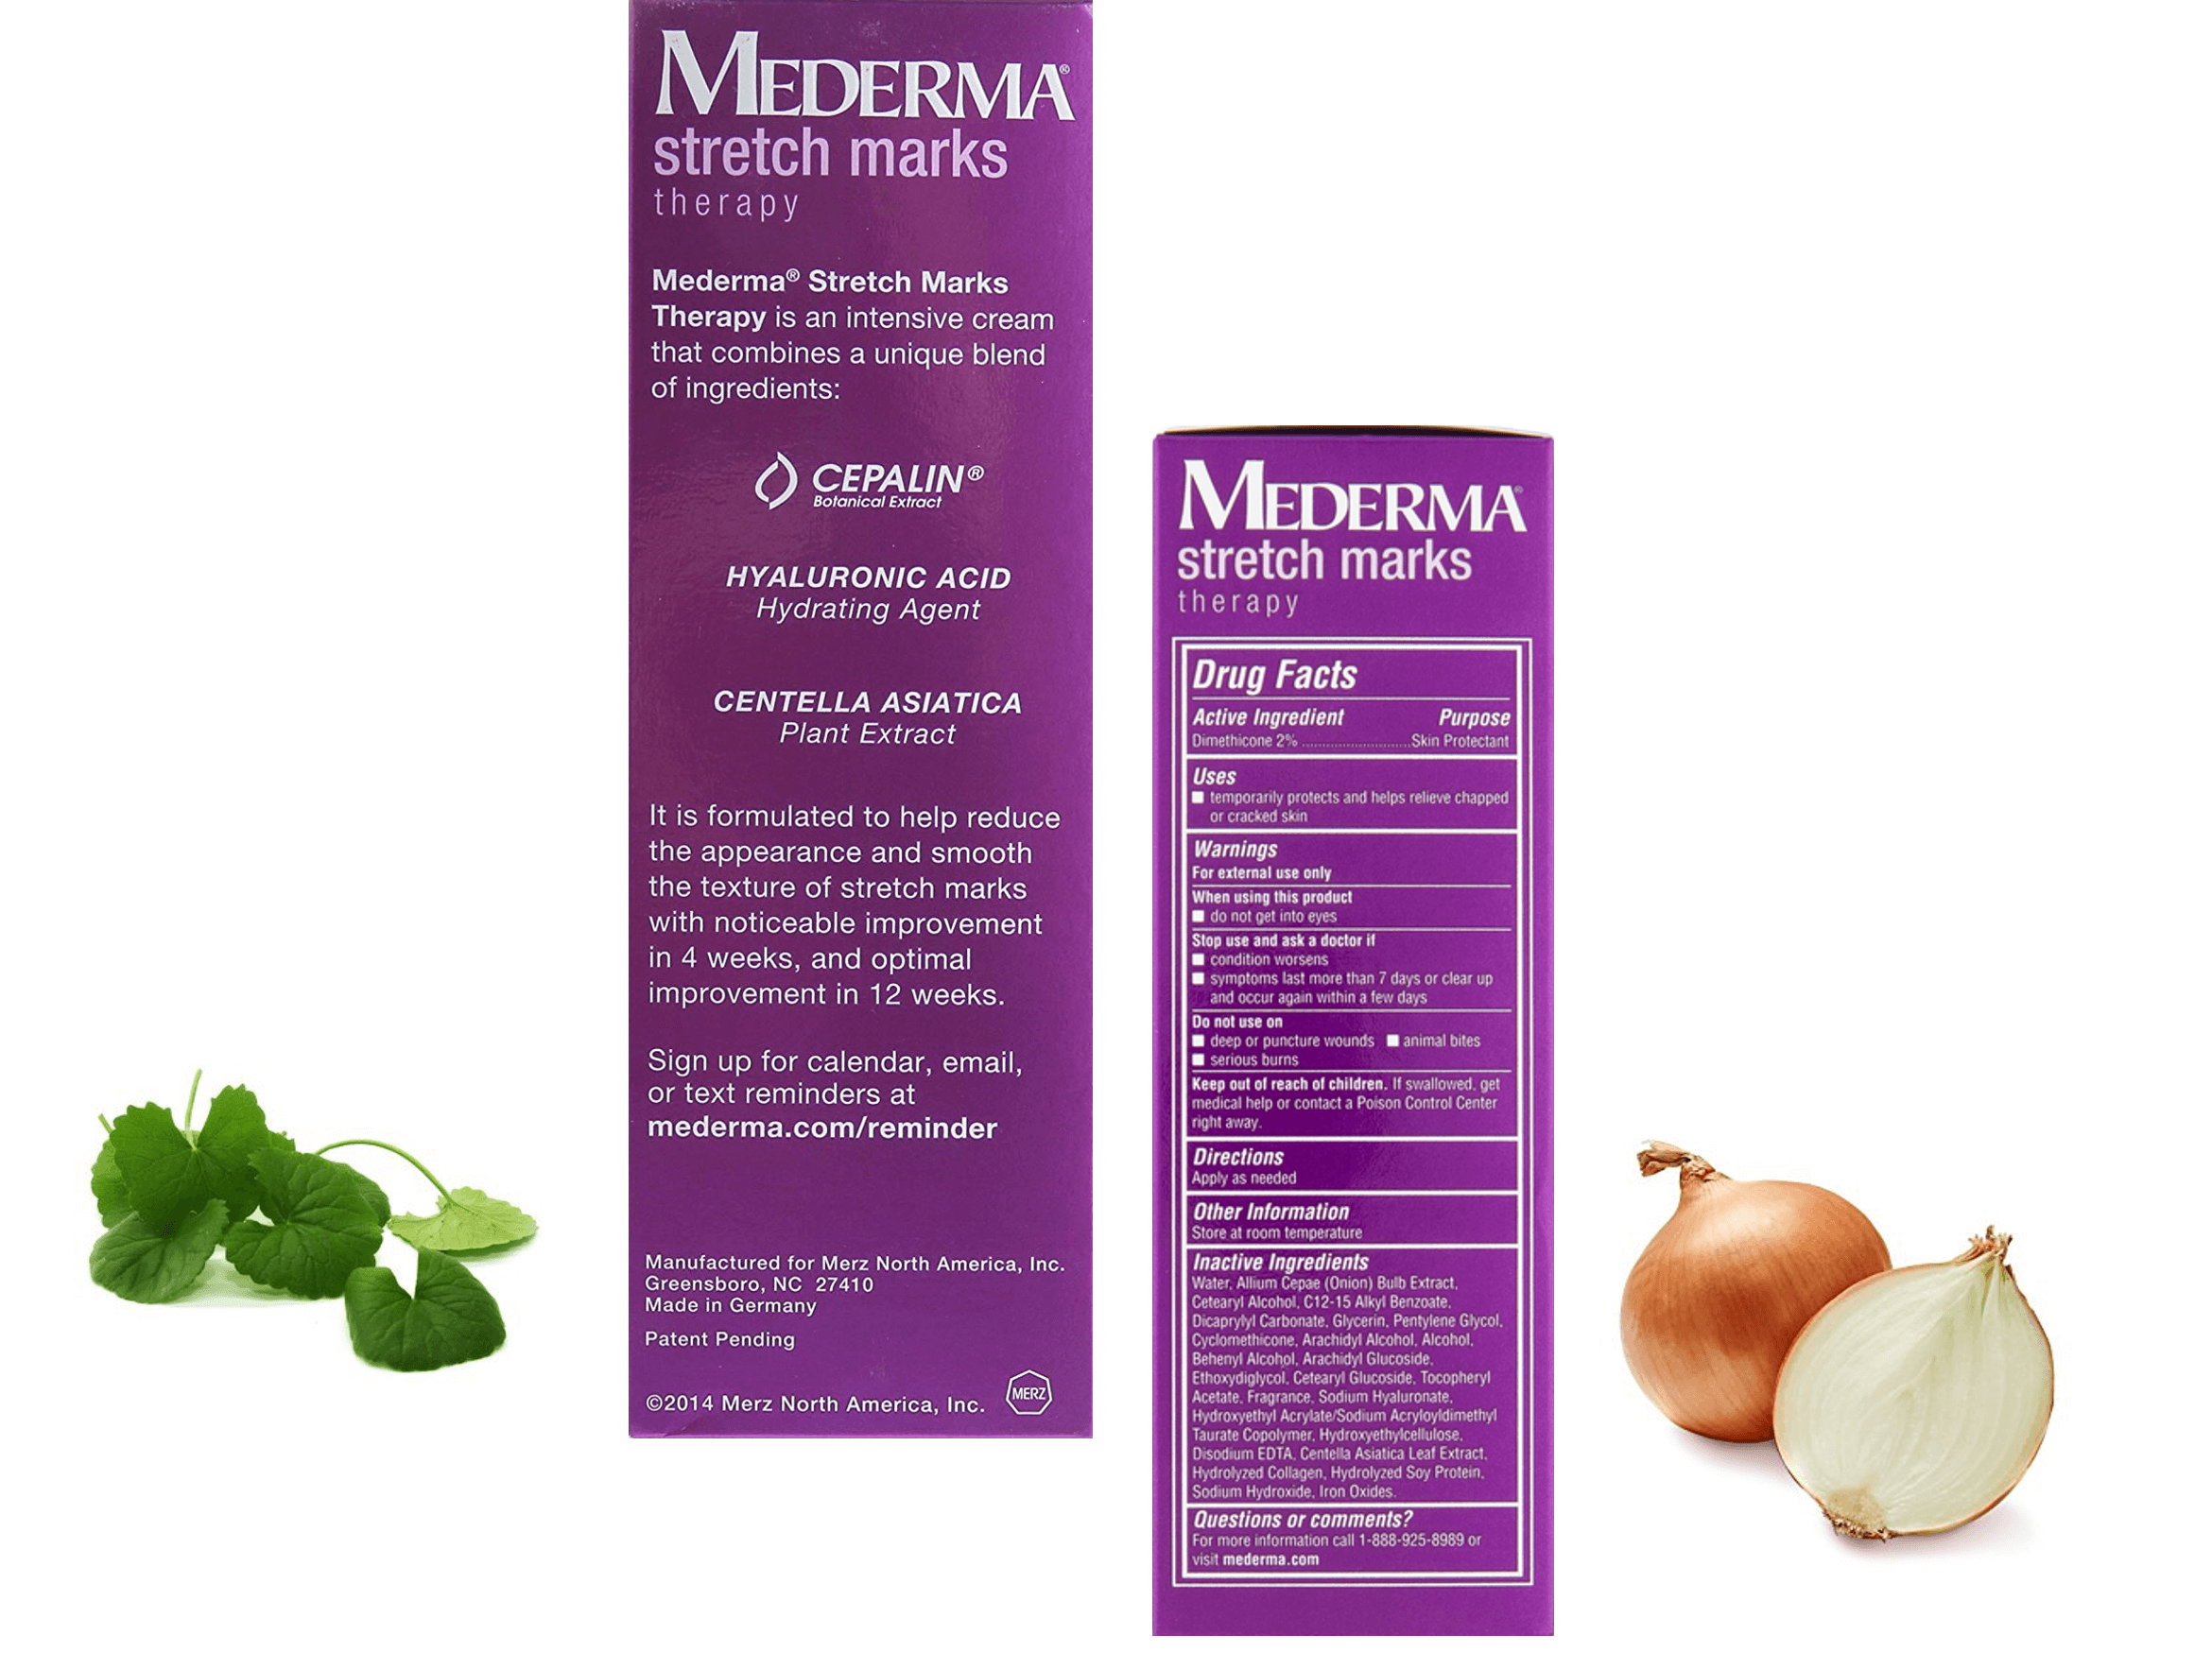 Does Mederma Stretch Mark Cream Work Fix Stretch Marks